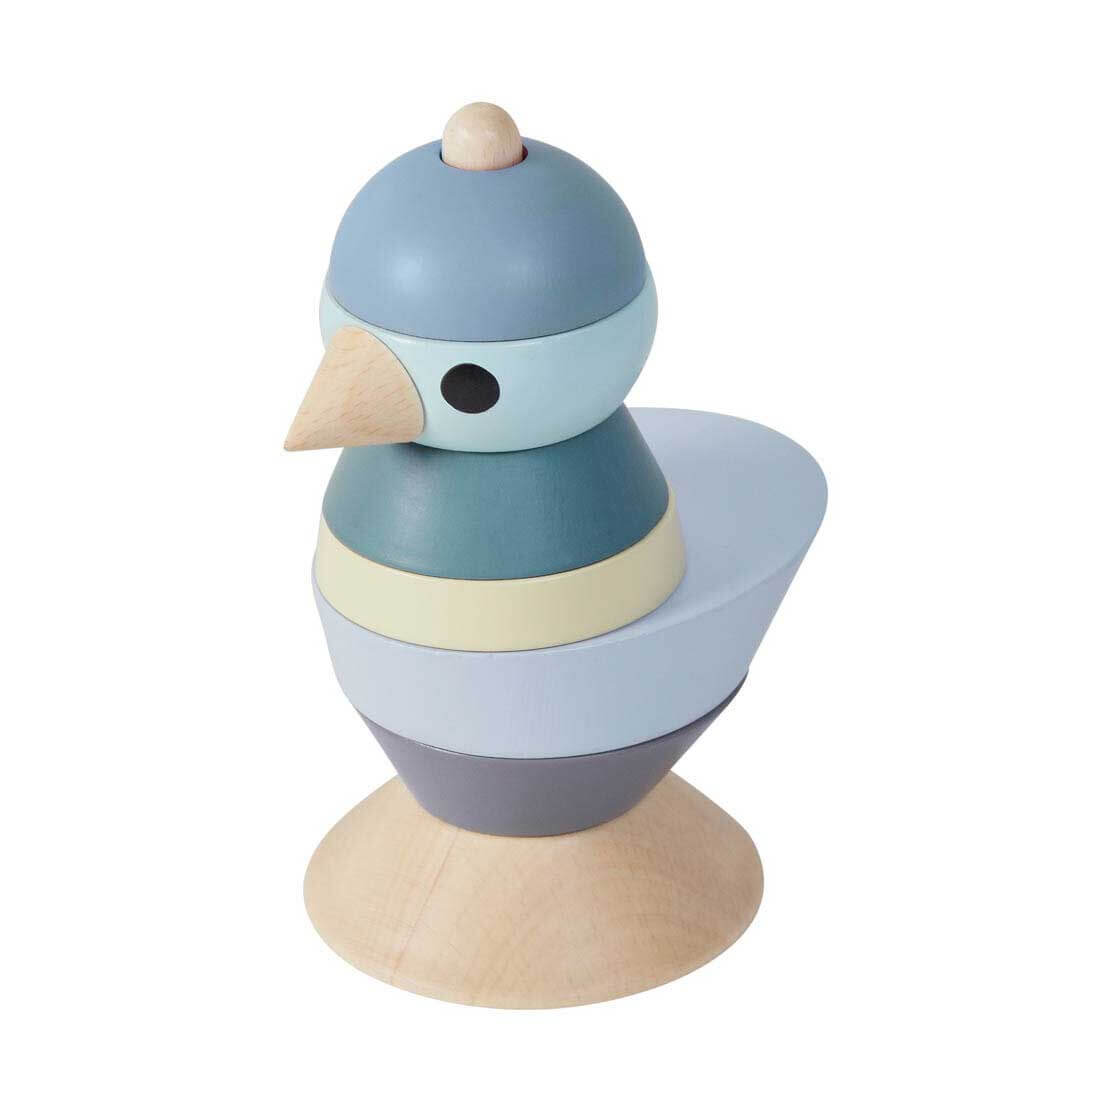 pepeandnika sebra interior wooden stacking toy bird in blue for babies and kids design learning toy